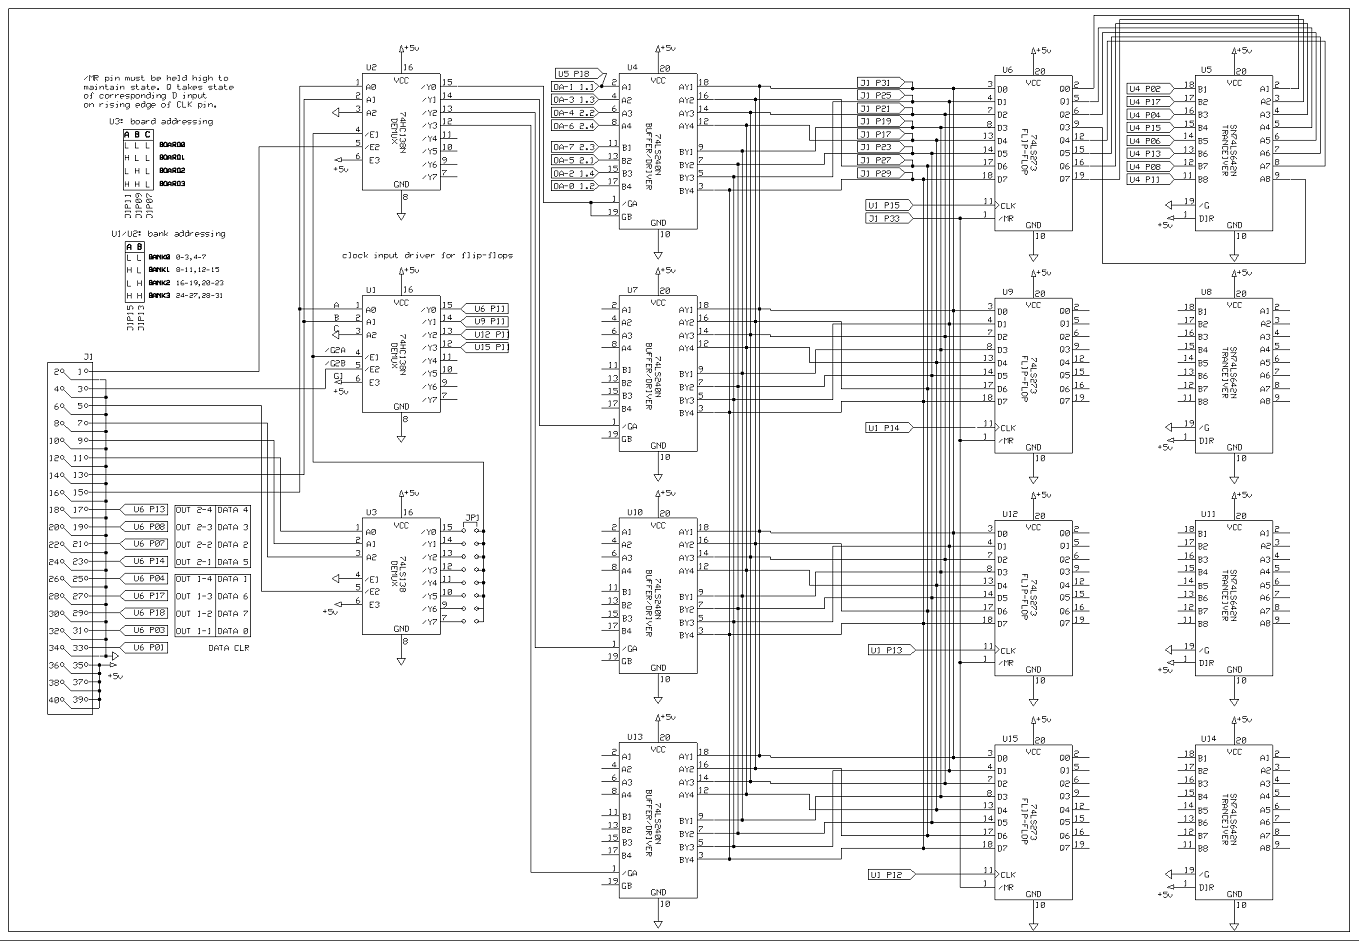 designing an arduino industrial controller  replacement for an obsolete electro cam control